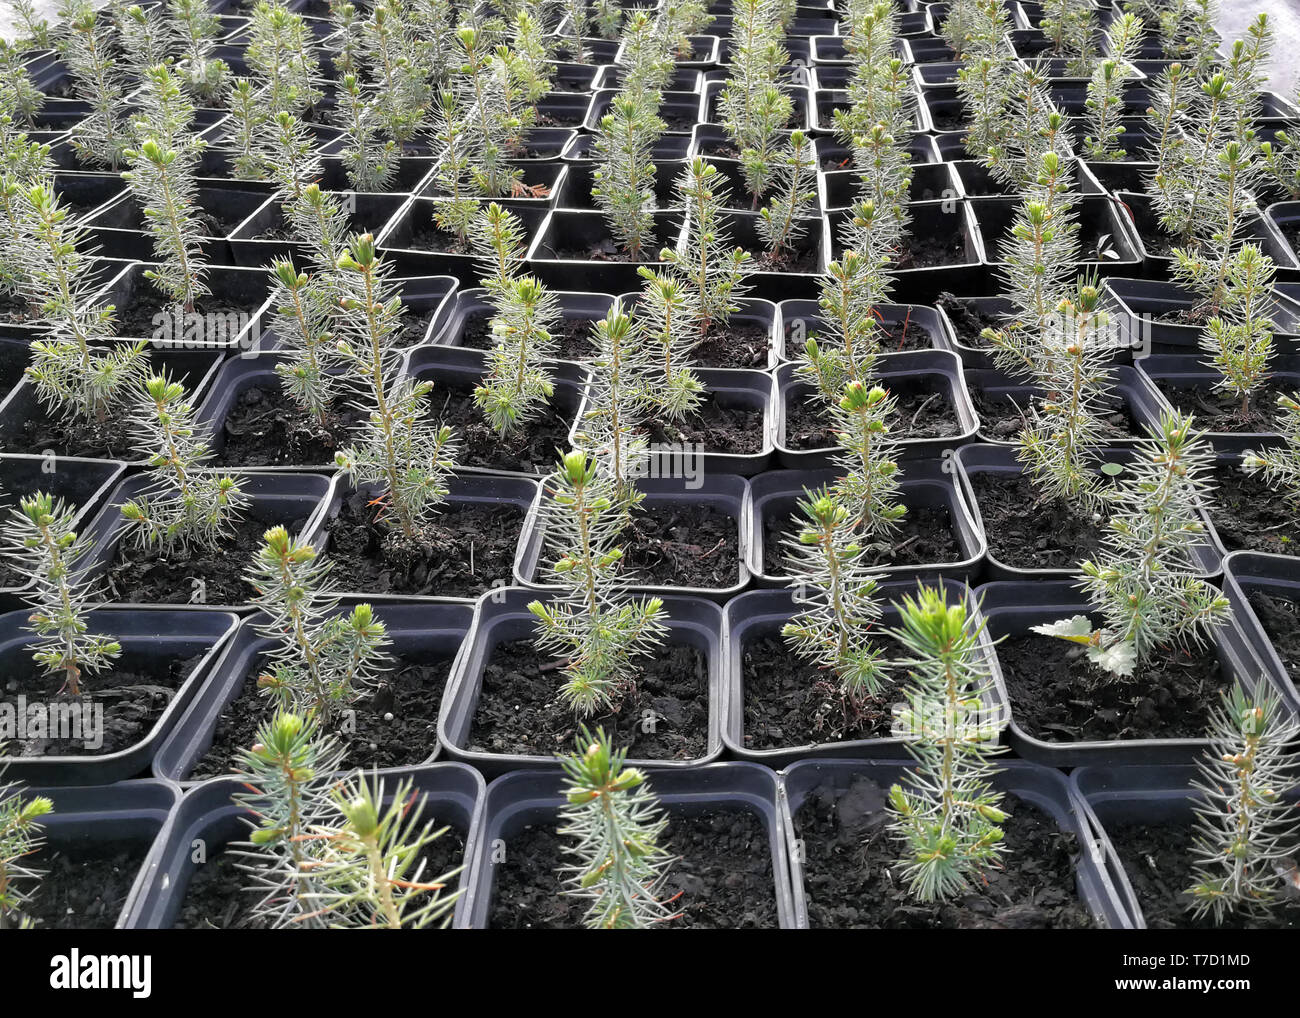 Pine, Christmas trees, junipers in pots and bonsai garden plants in a plant nursery - Stock Image